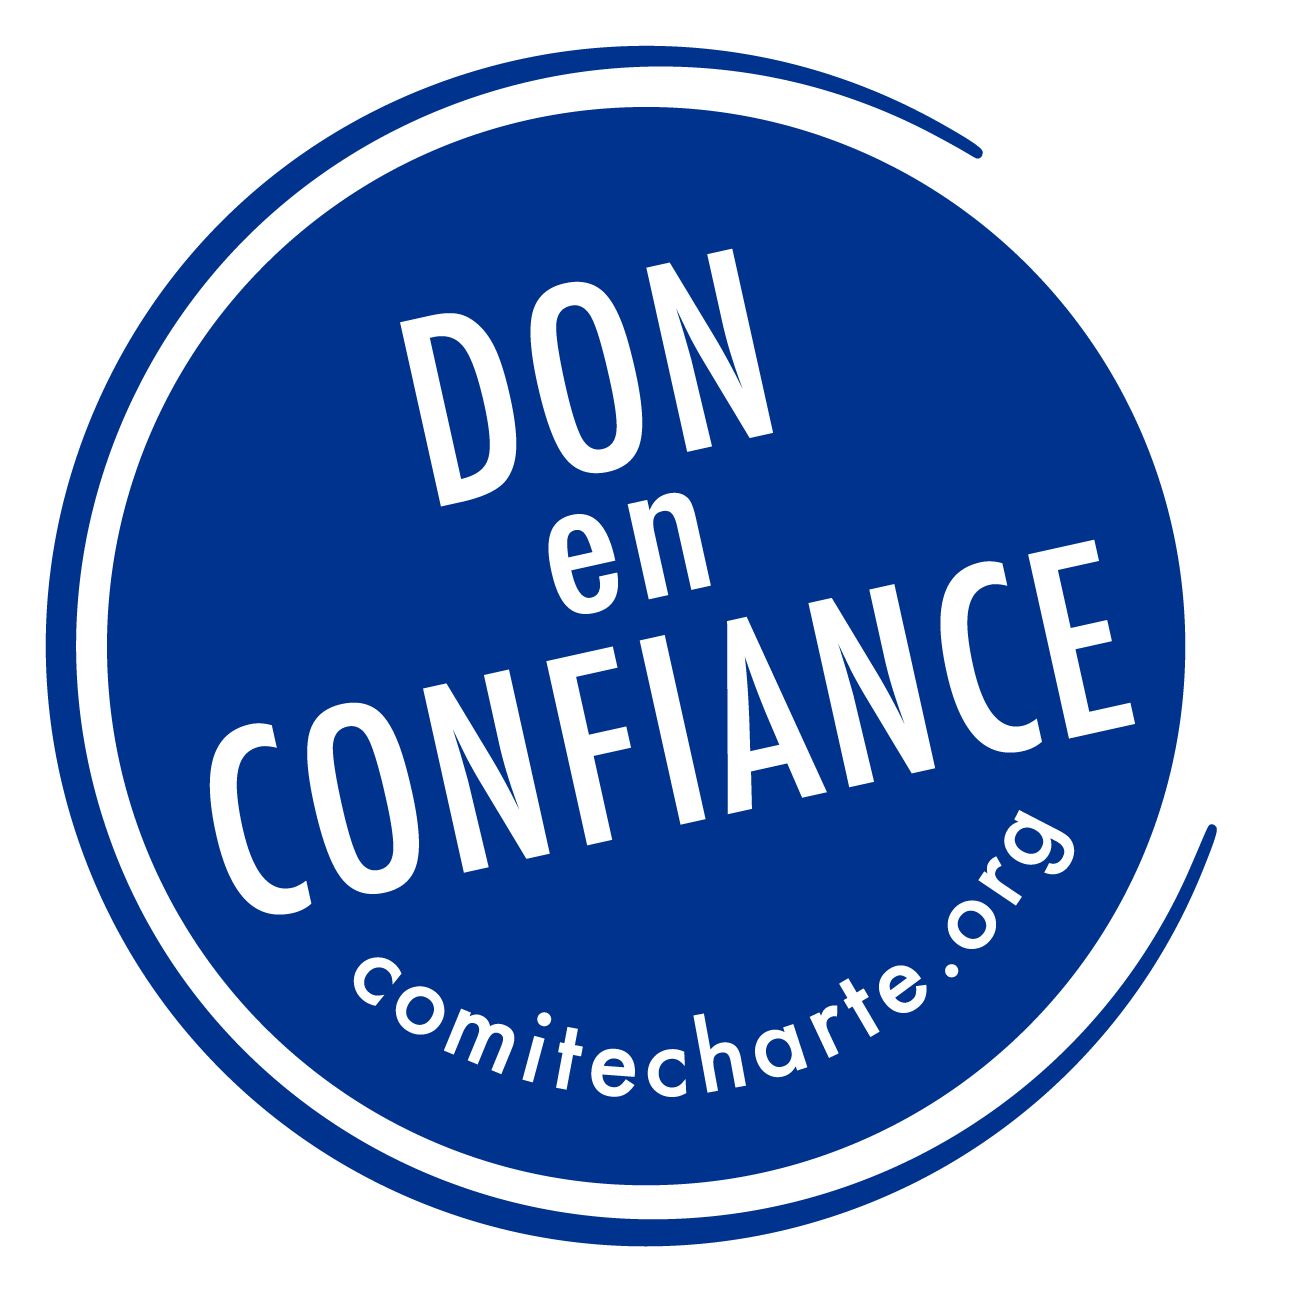 ComiteCharte Don logo RVB